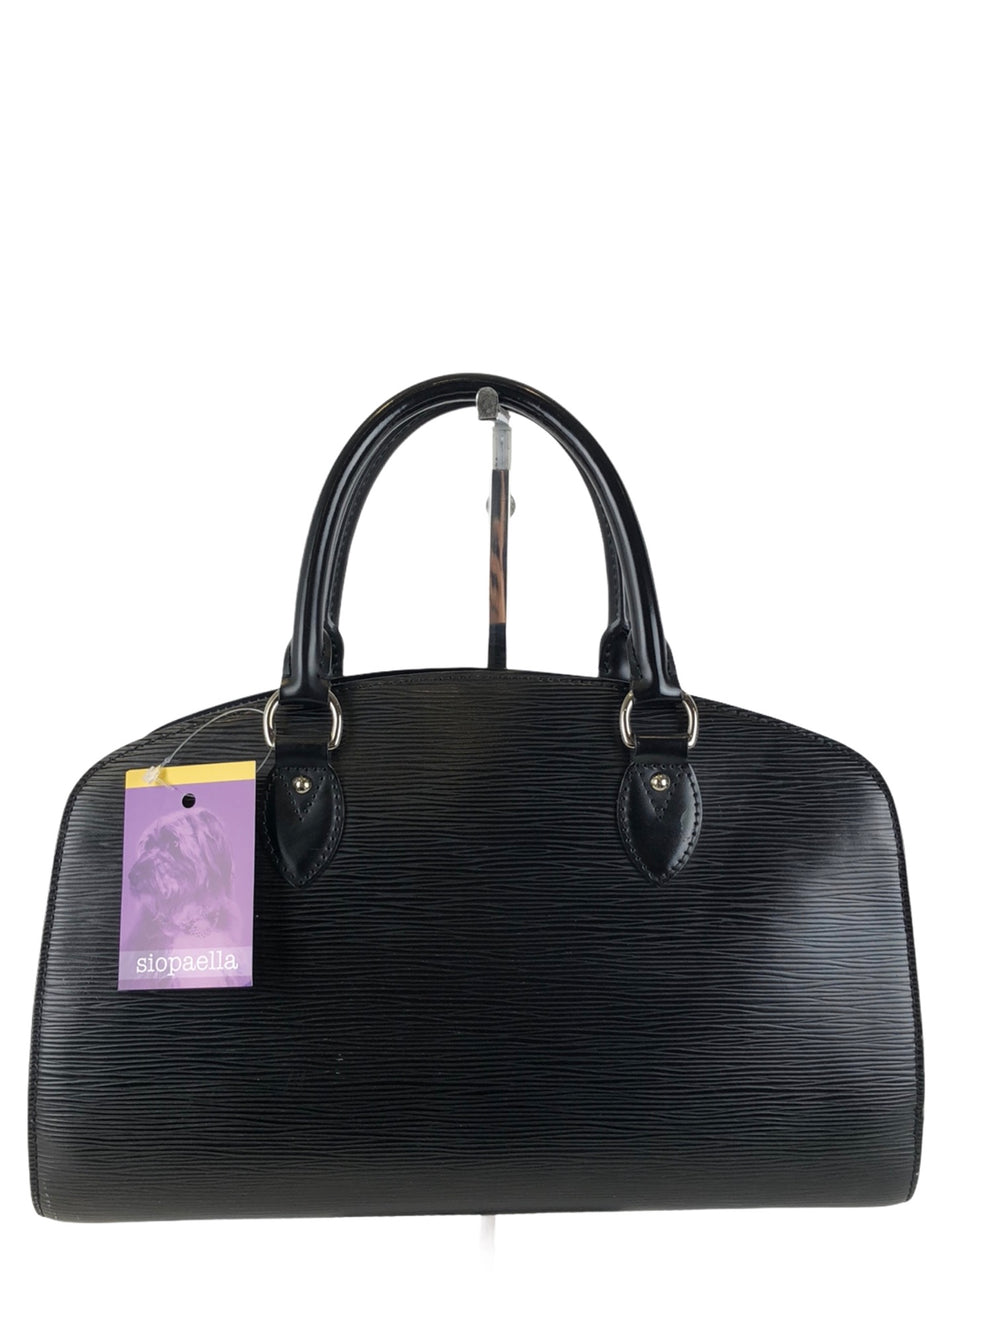 Louis Vuitton Black Epi Leather Tote